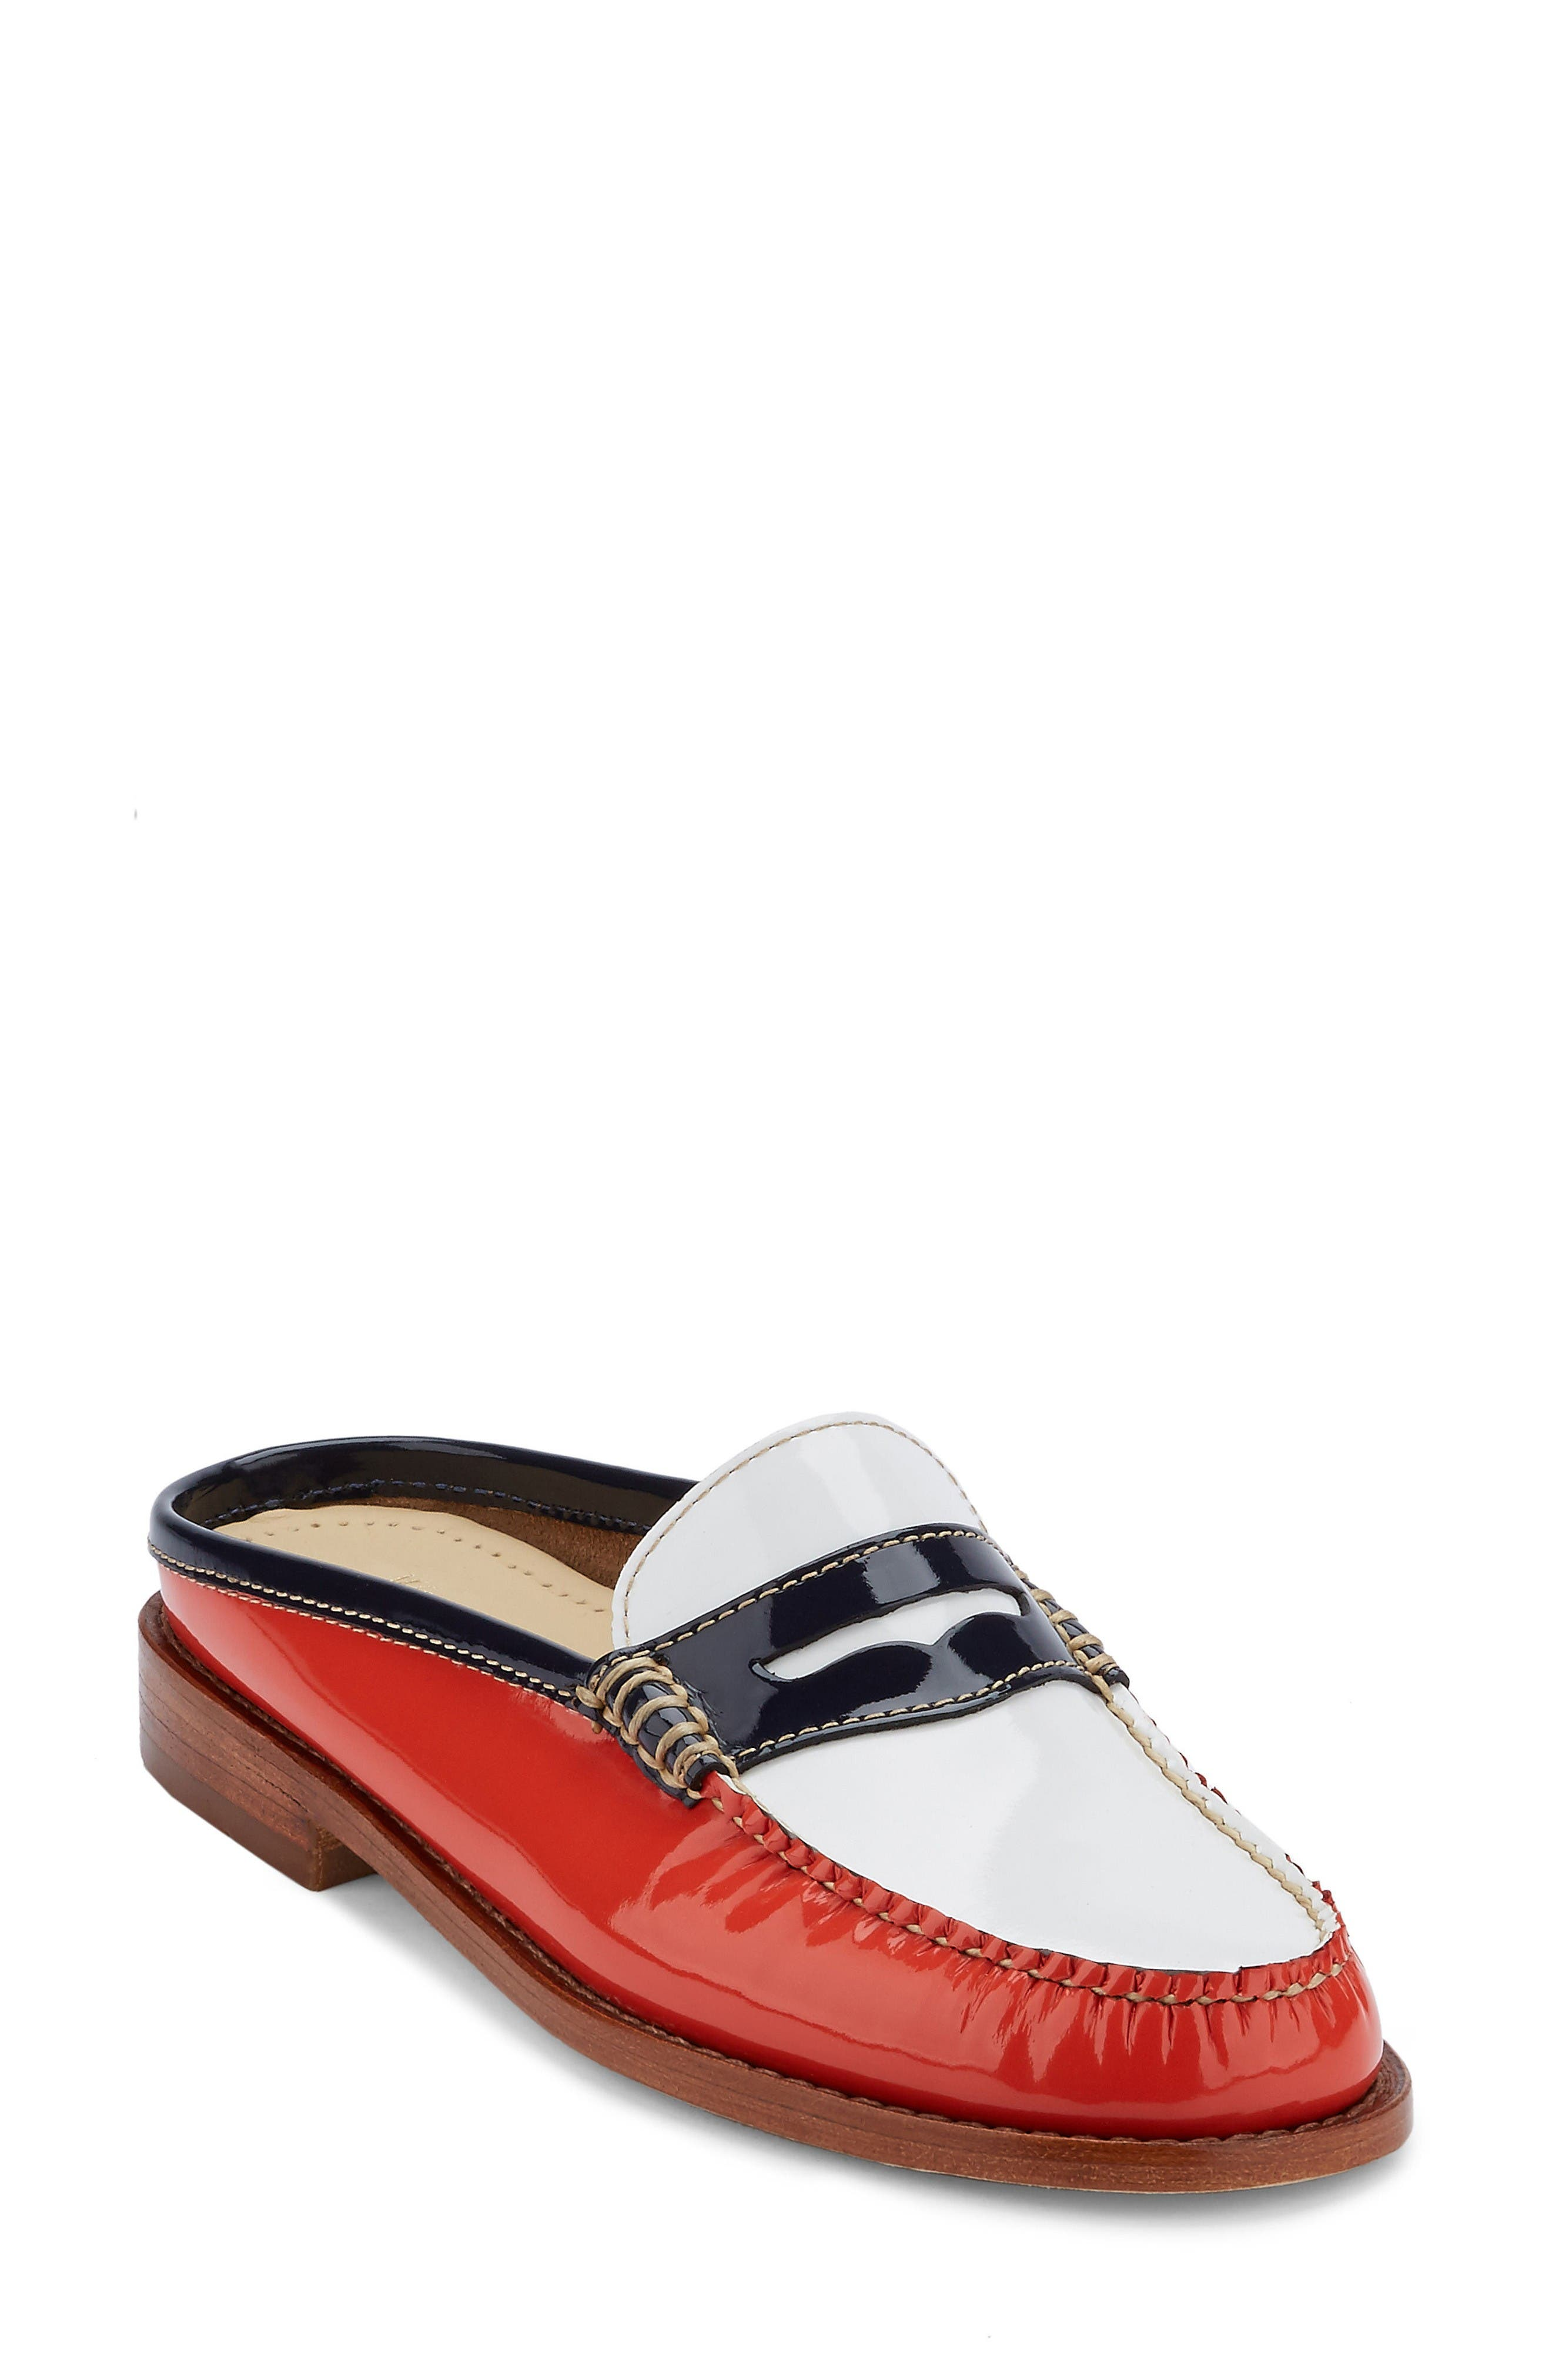 Wynn Loafer Mule,                             Main thumbnail 1, color,                             Poppy/ White Leather